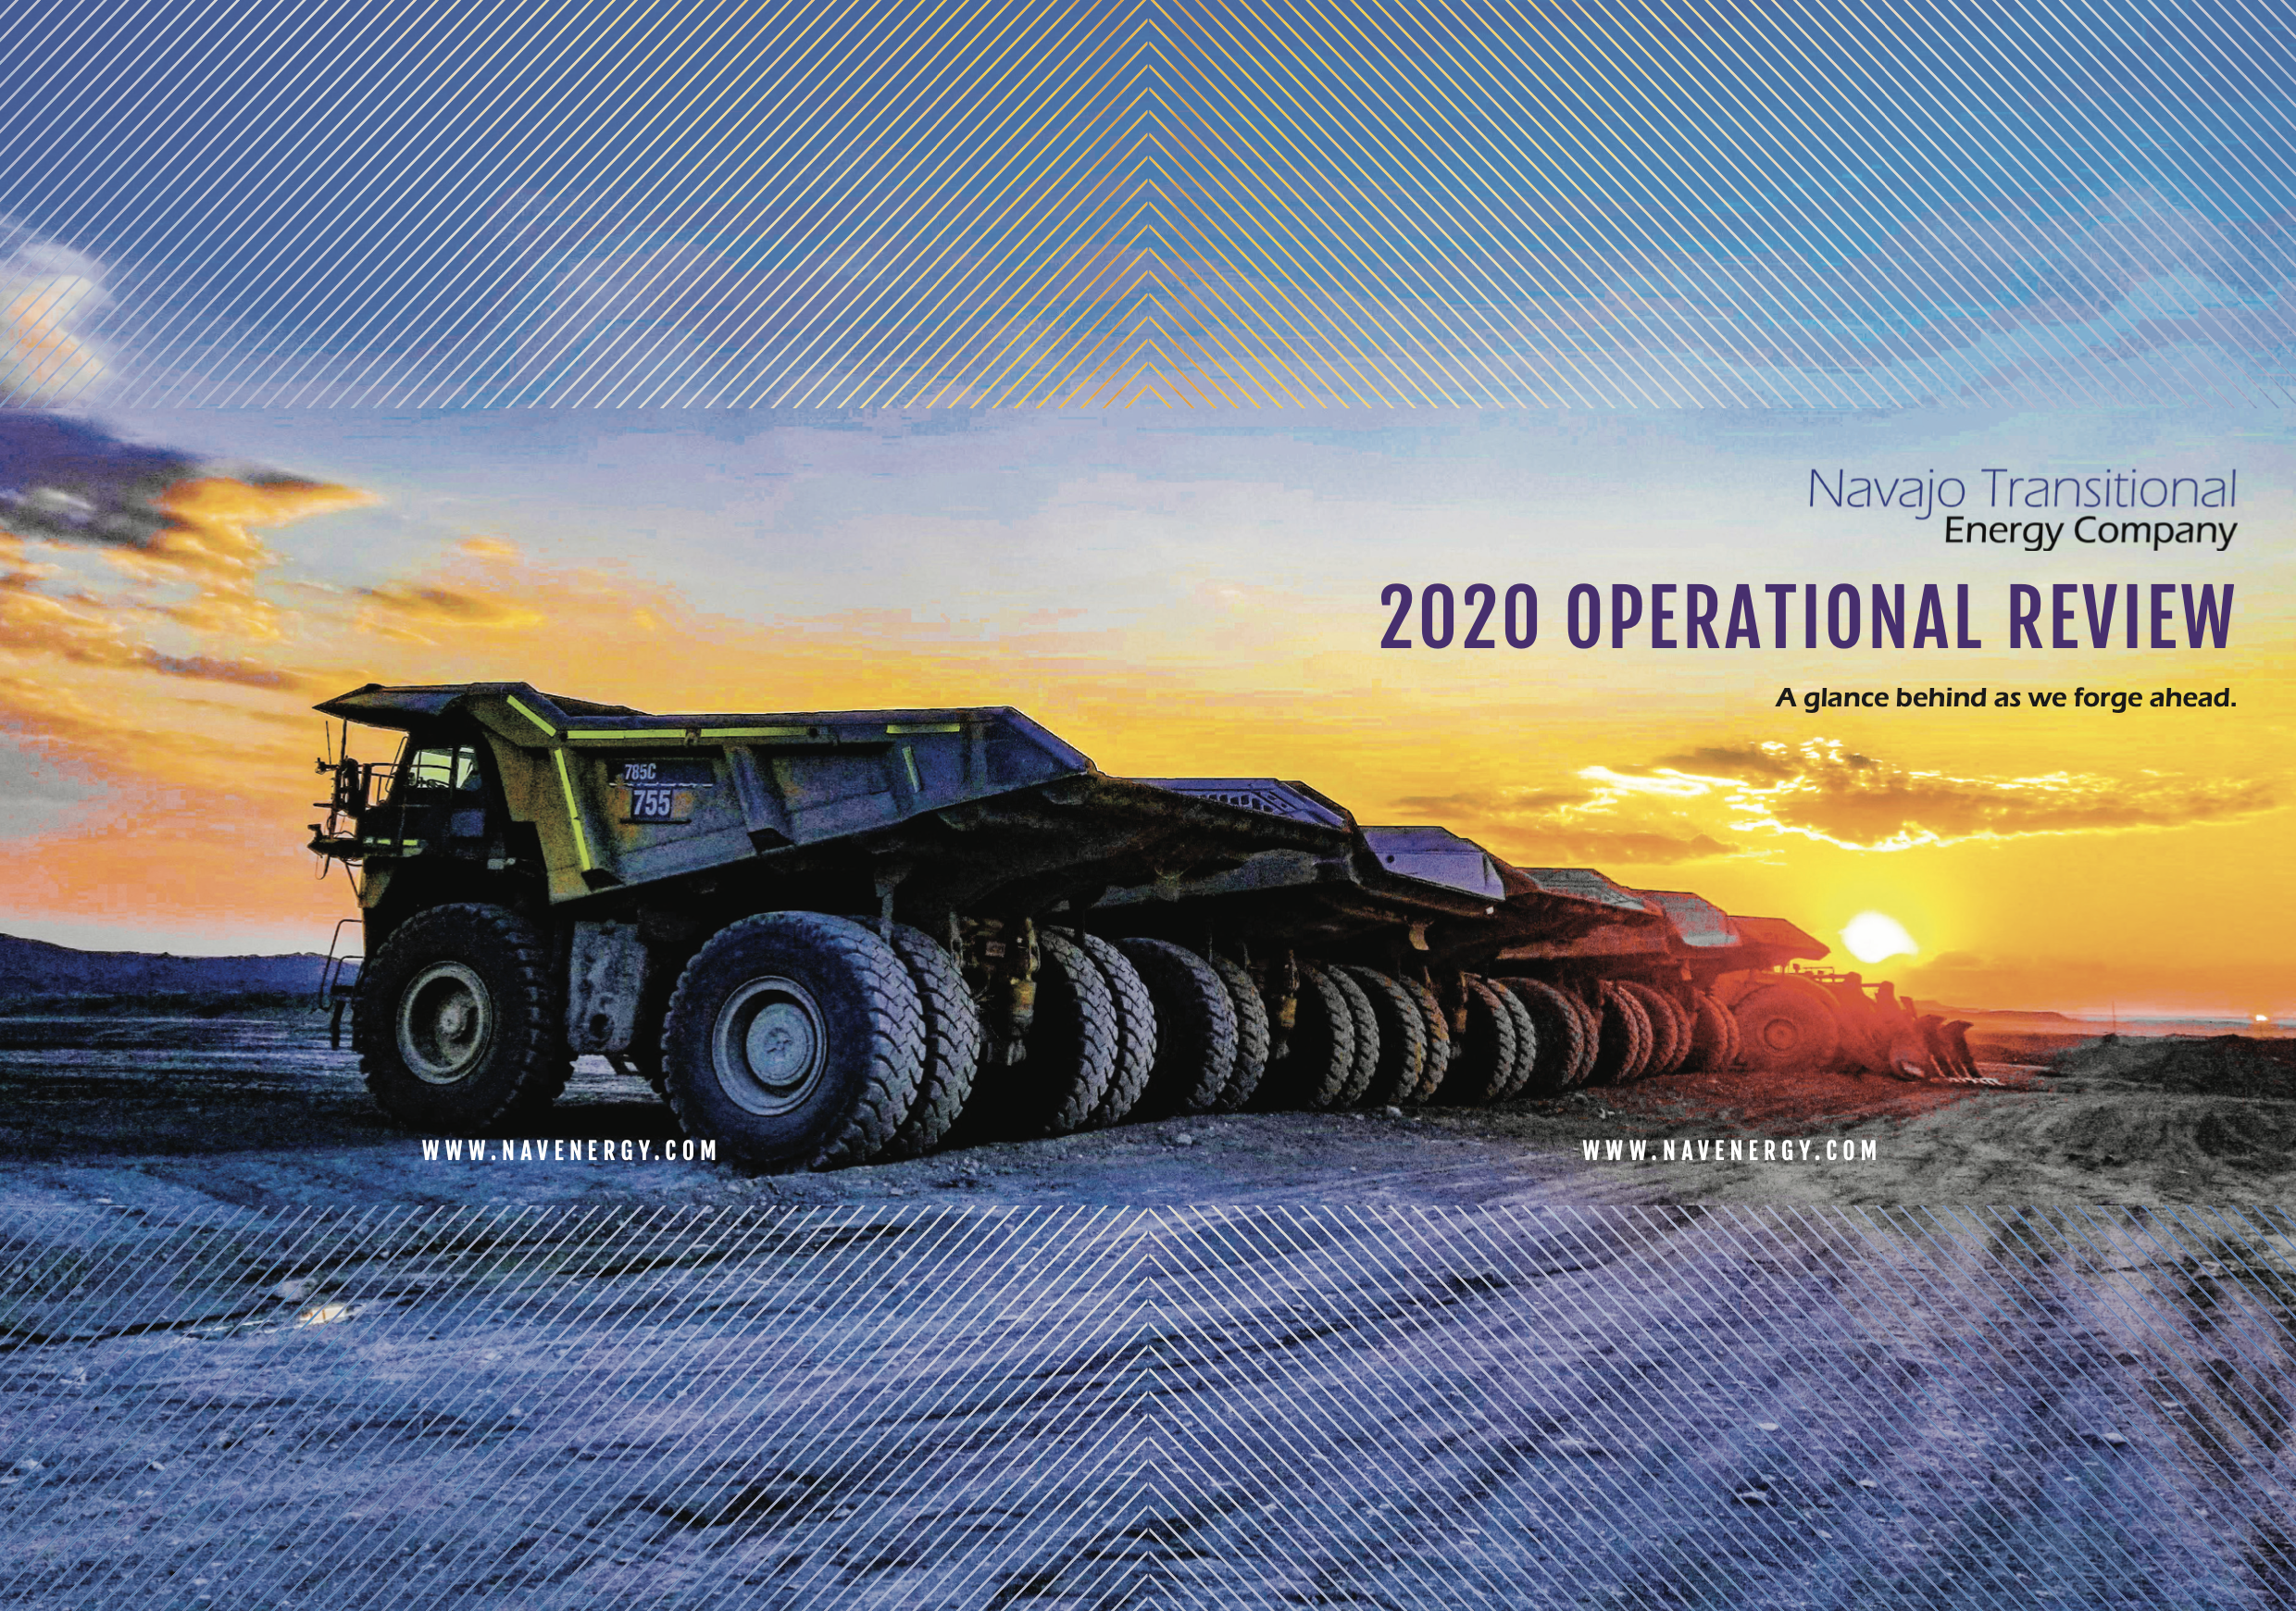 2020 Operational Review